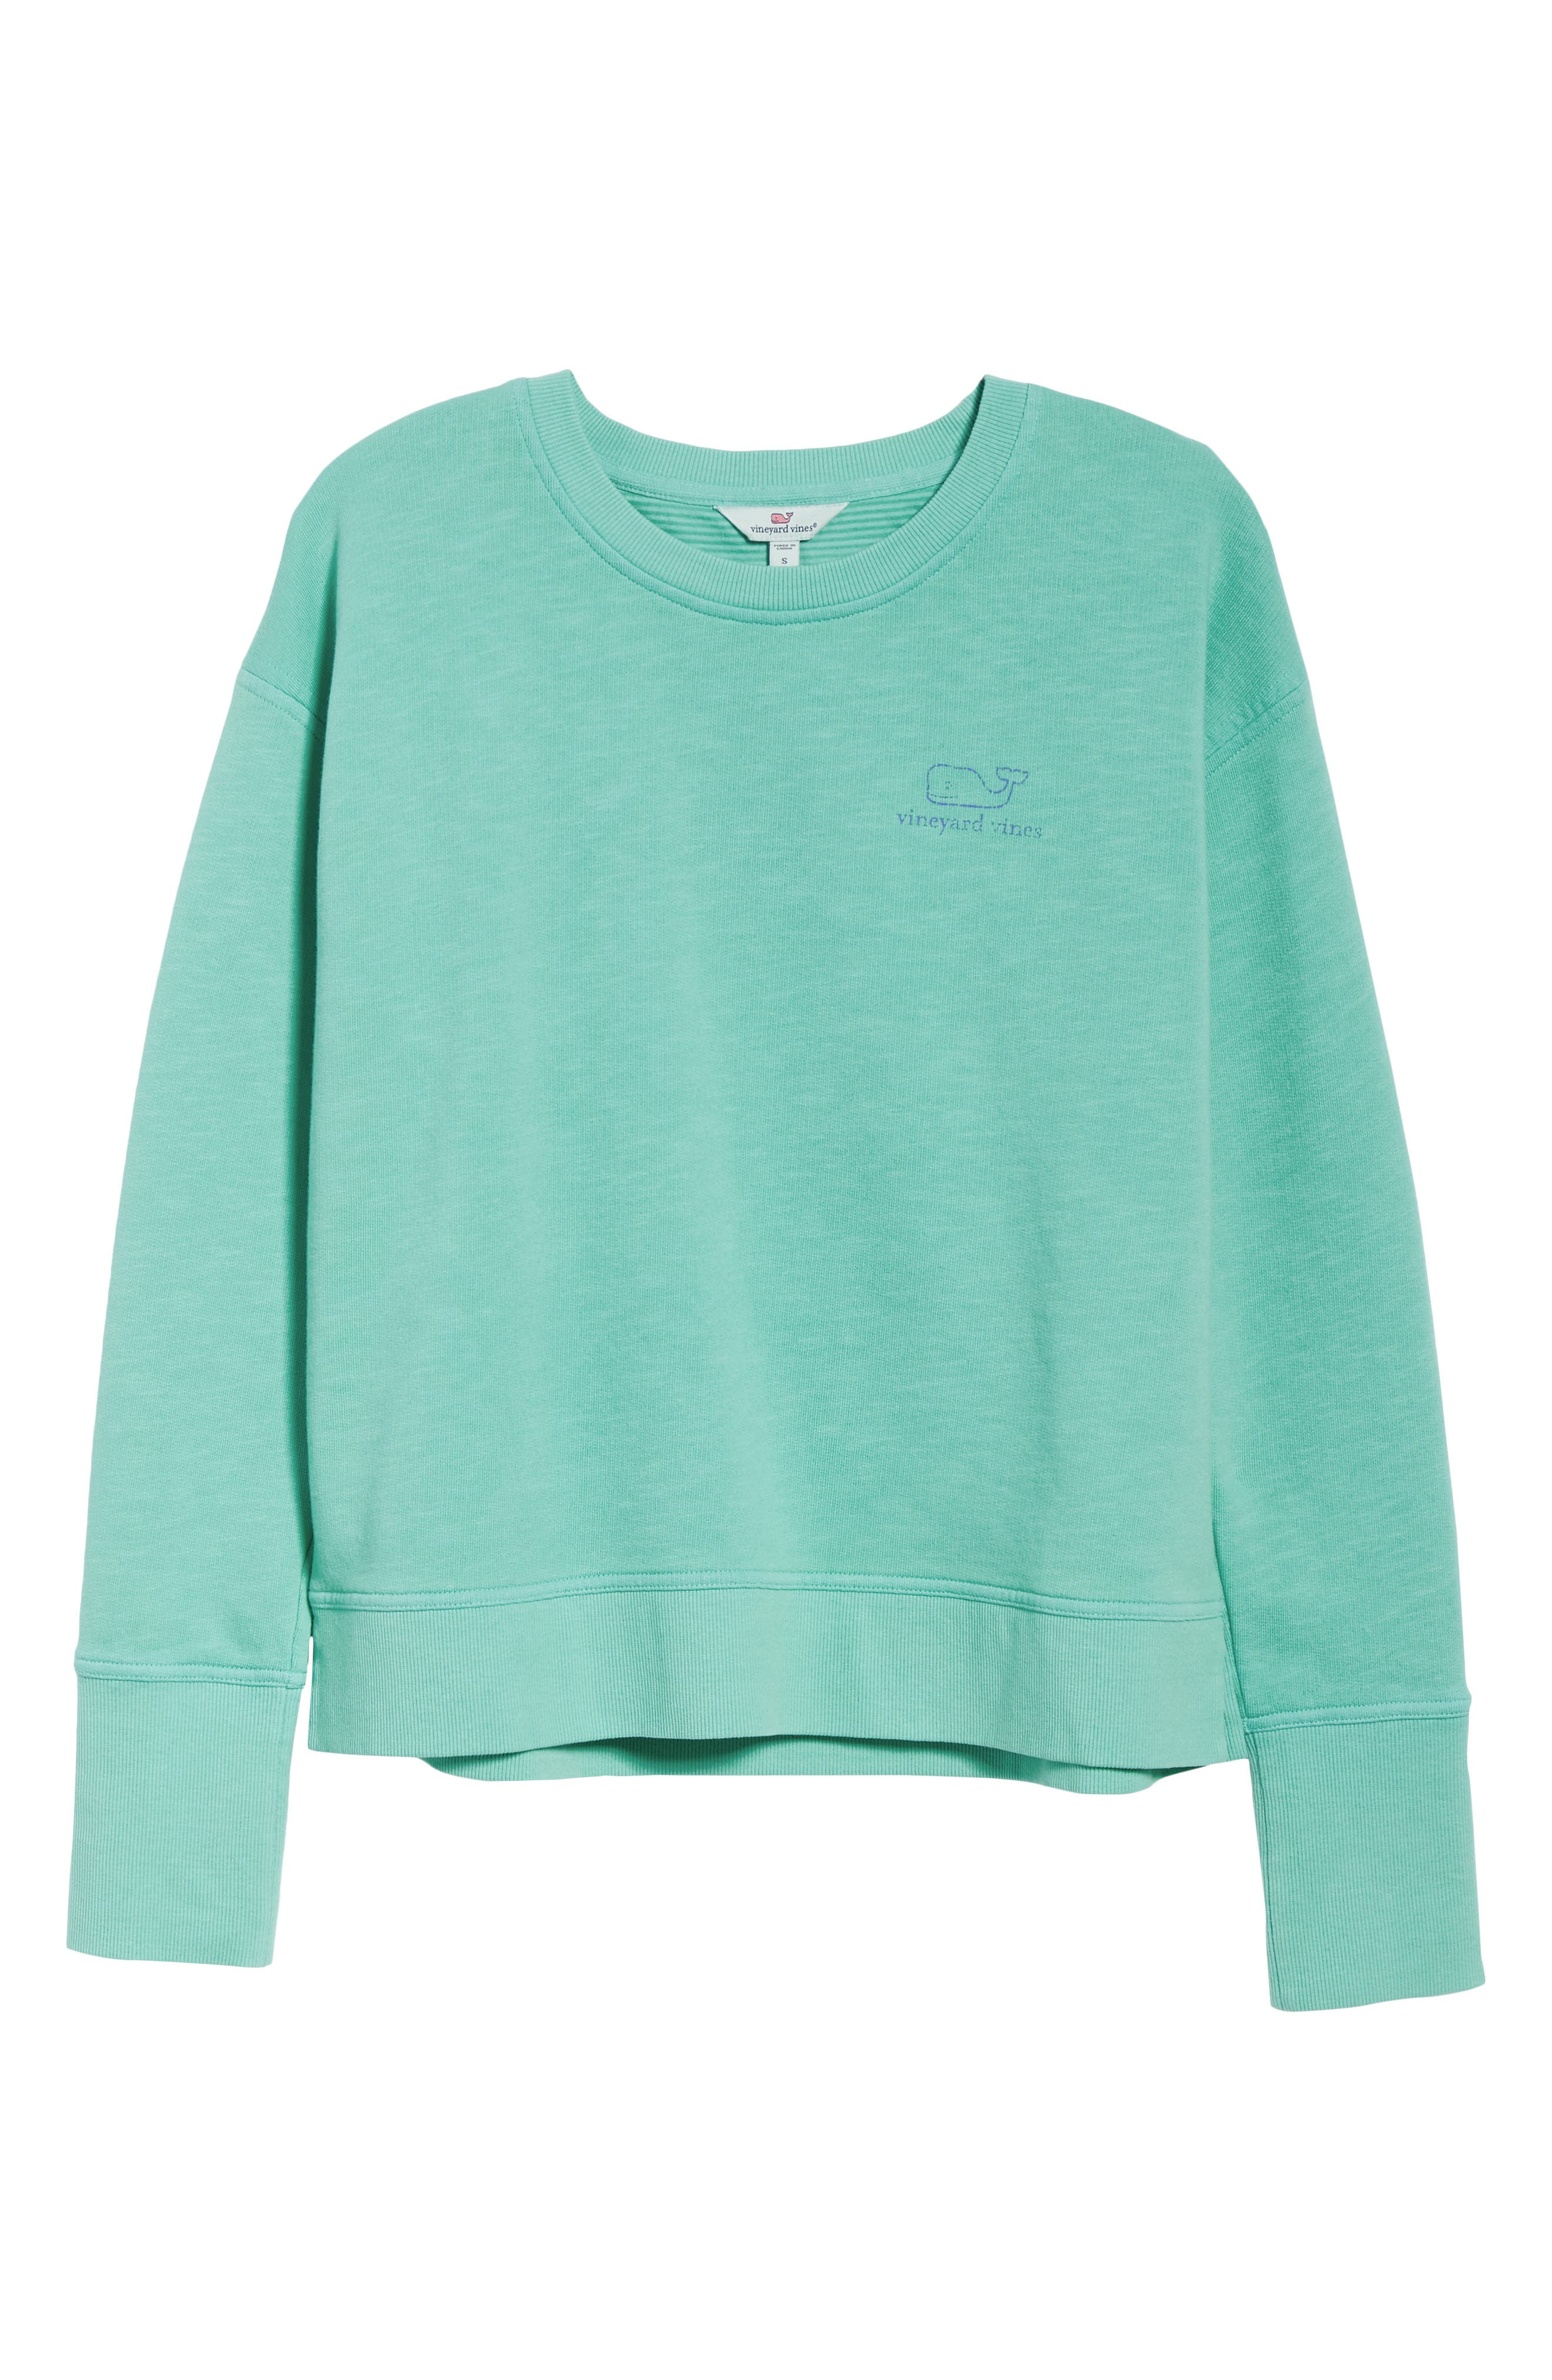 Garment Dyed Vintage Whale Long Sleeve Cotton Tee,                             Alternate thumbnail 6, color,                             464